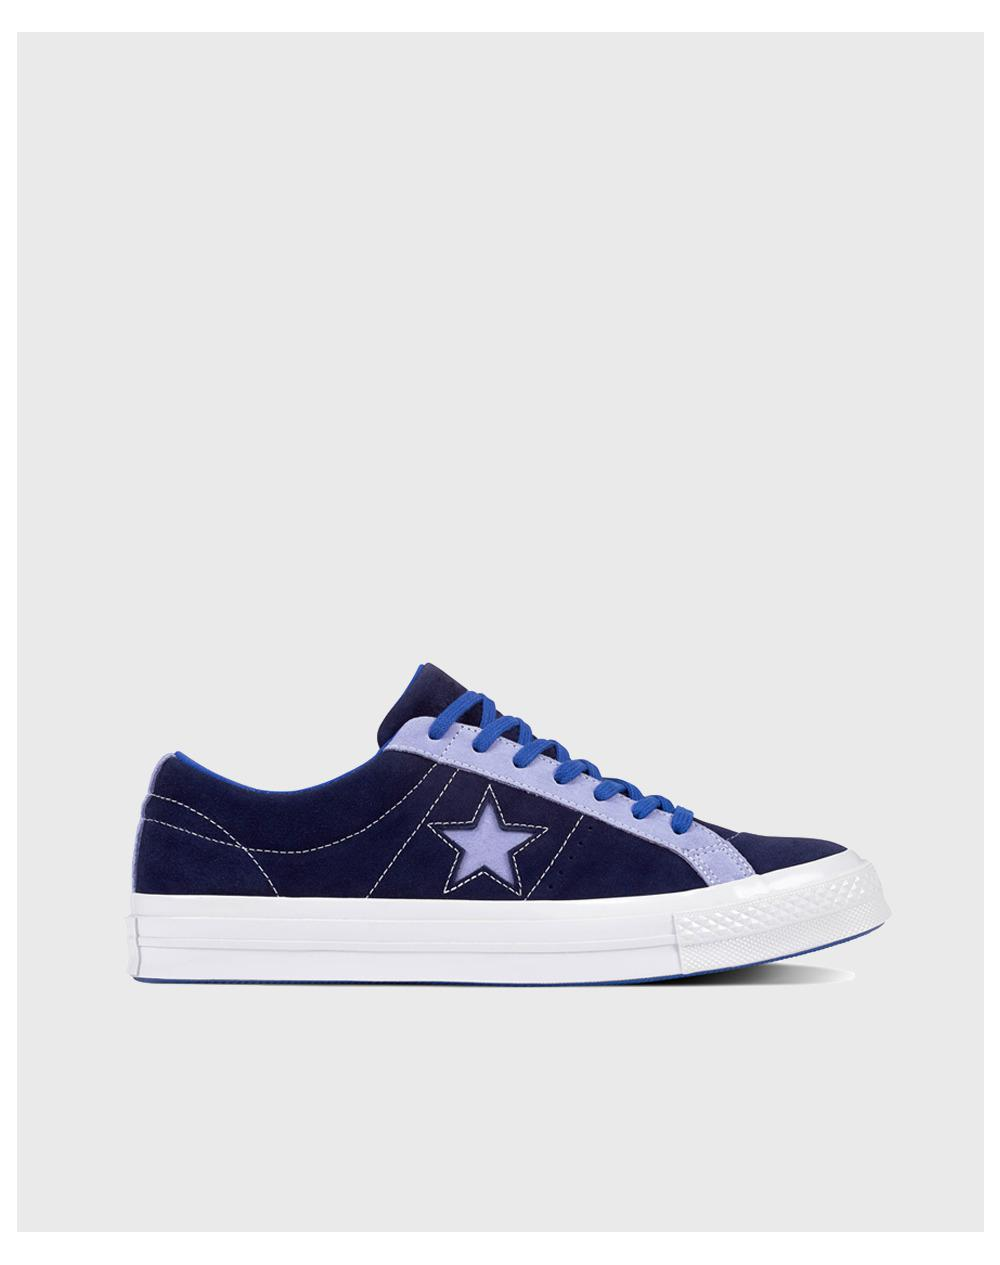 a7c58e24c7d Lyst - Converse One Star Carnival Ox Unisex Casual Trainers in Blue ...